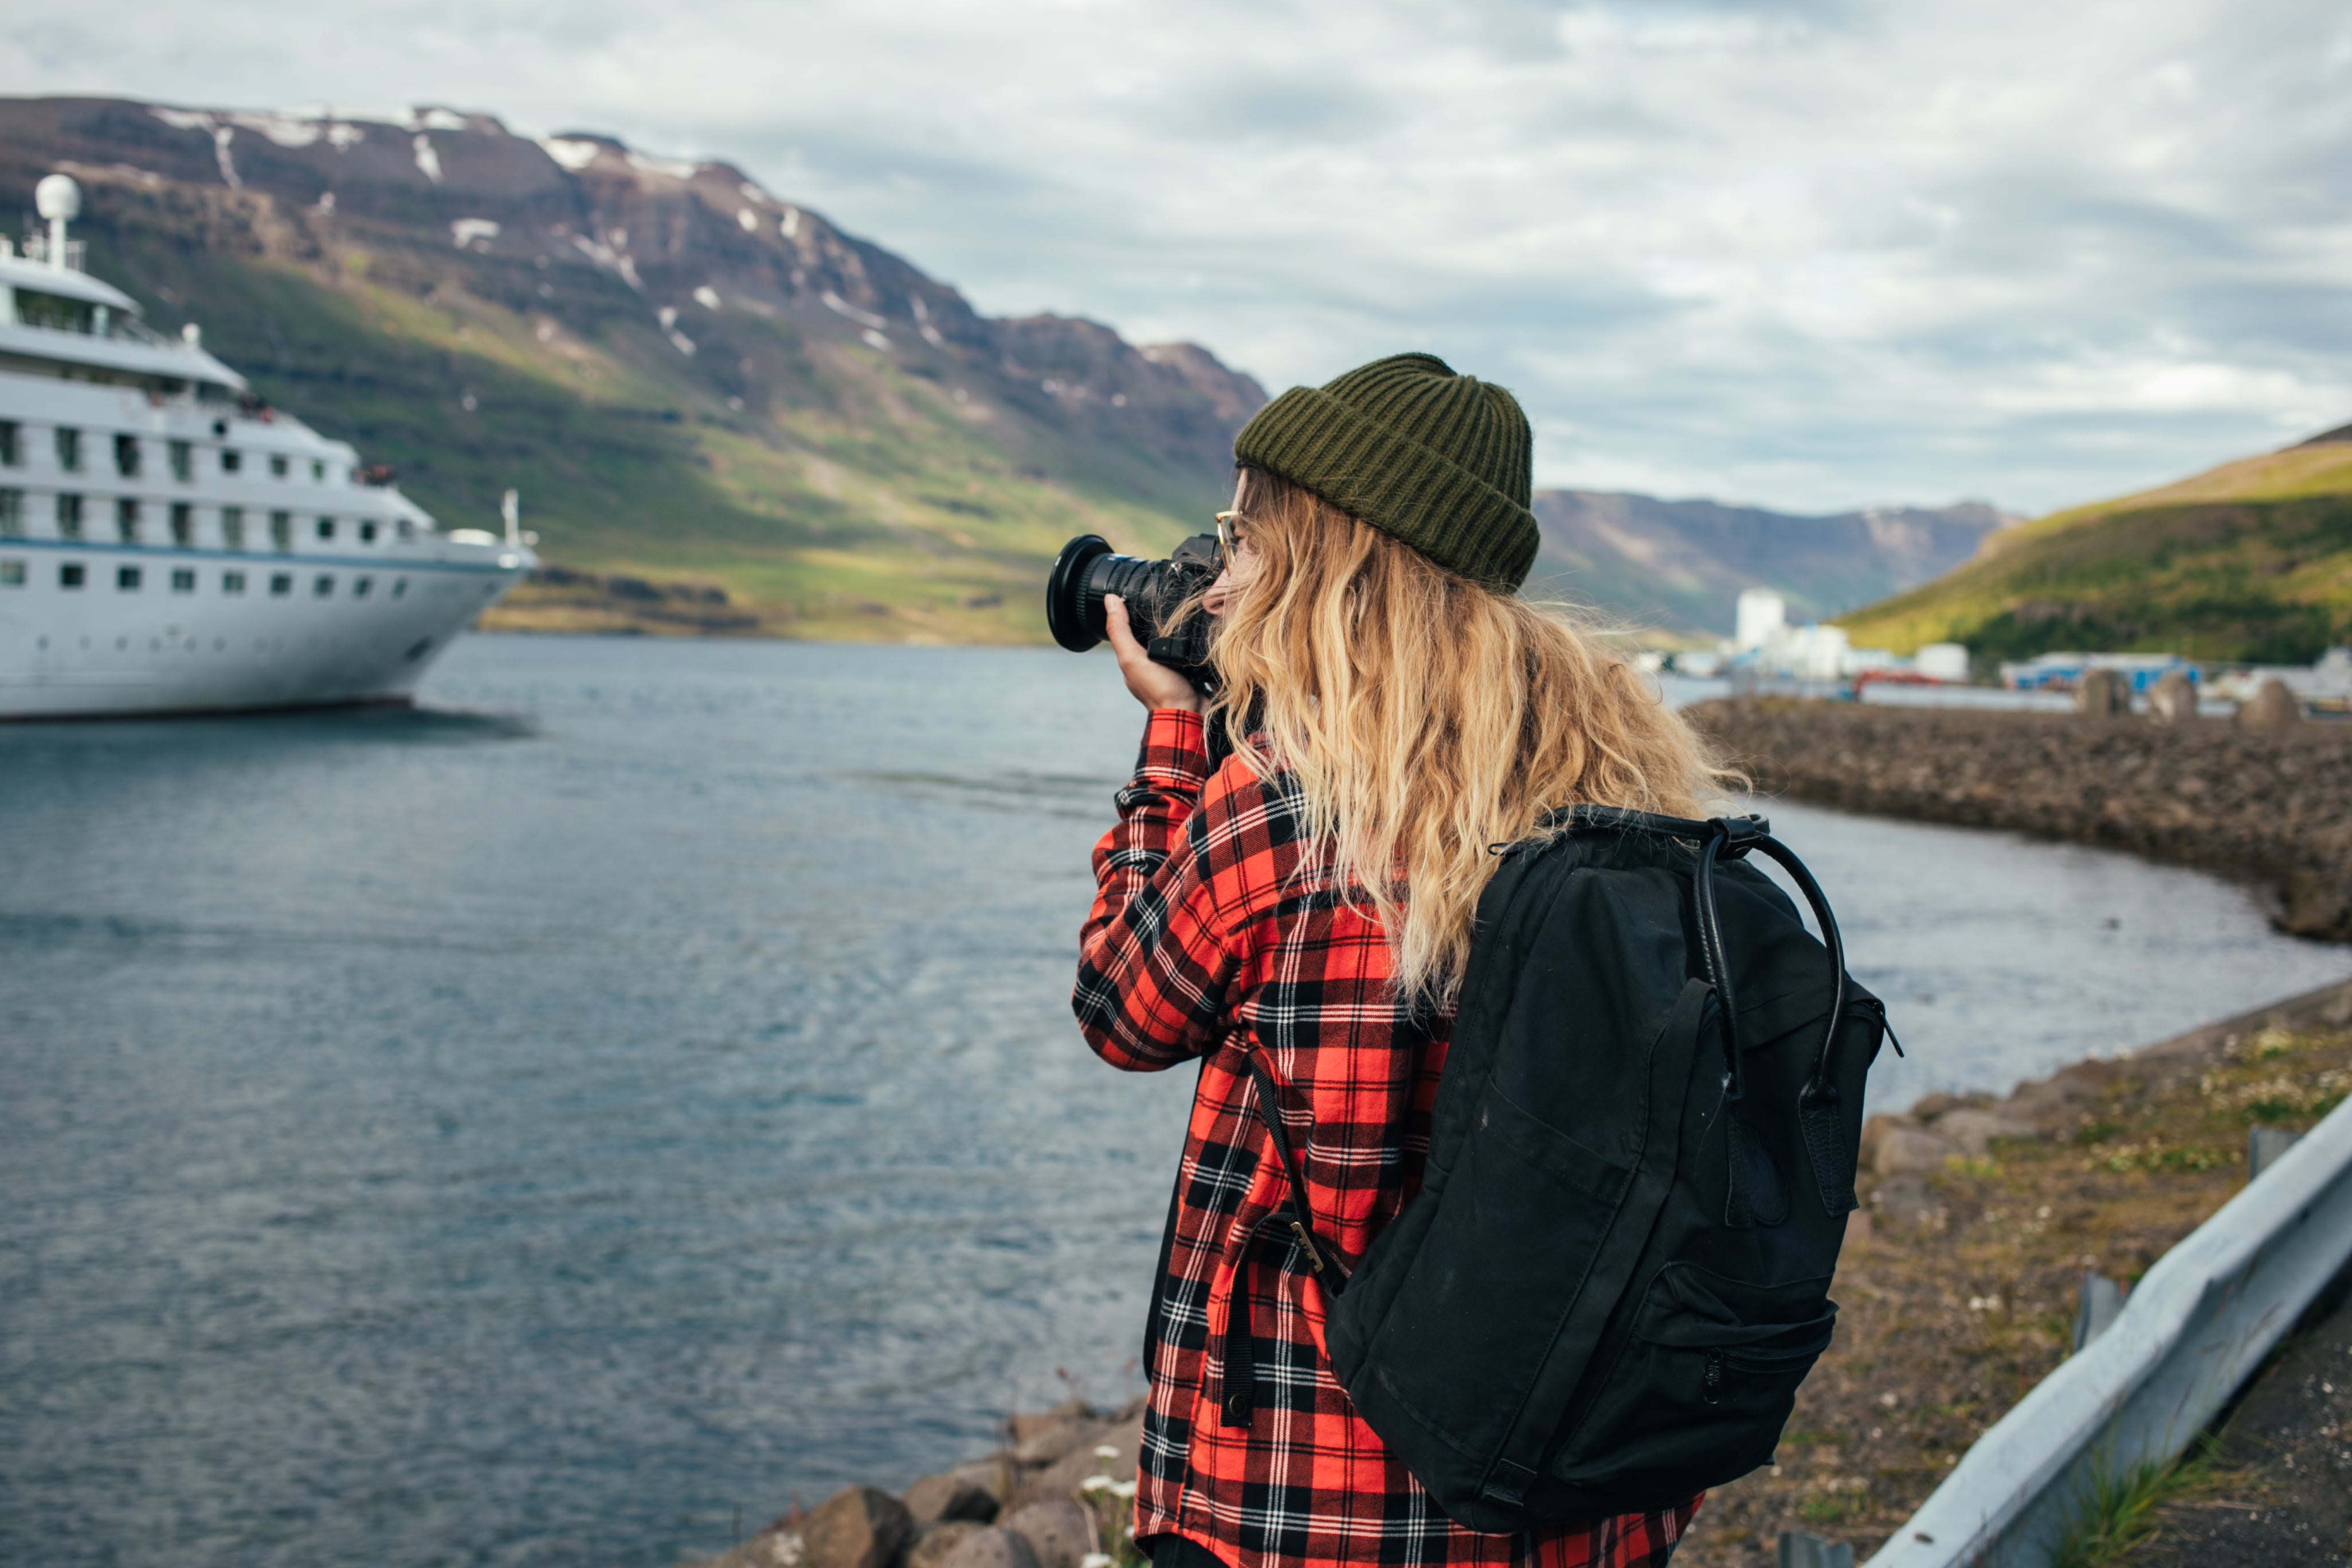 Girl taking a photo of a boat